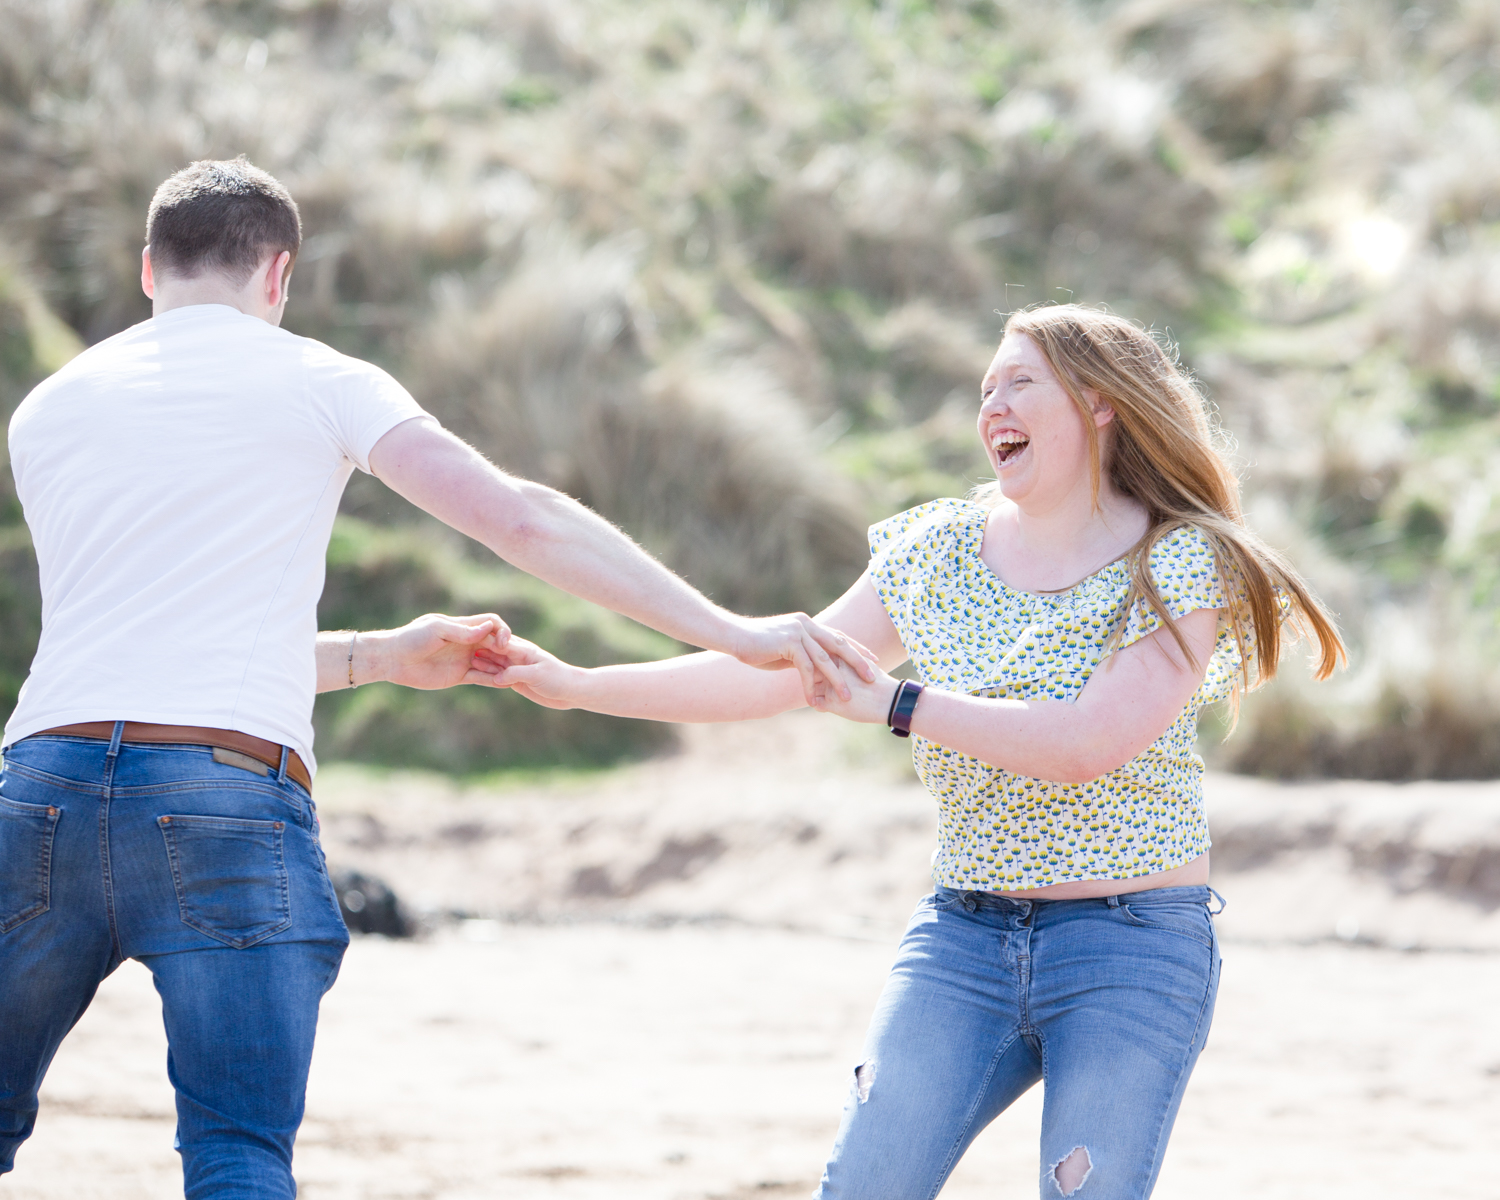 PICTORIAL_BERWICK_pre-wedding-family-couple-shoot-beach-coldingham-bay-birthday-dogs-grandparents--6.jpg